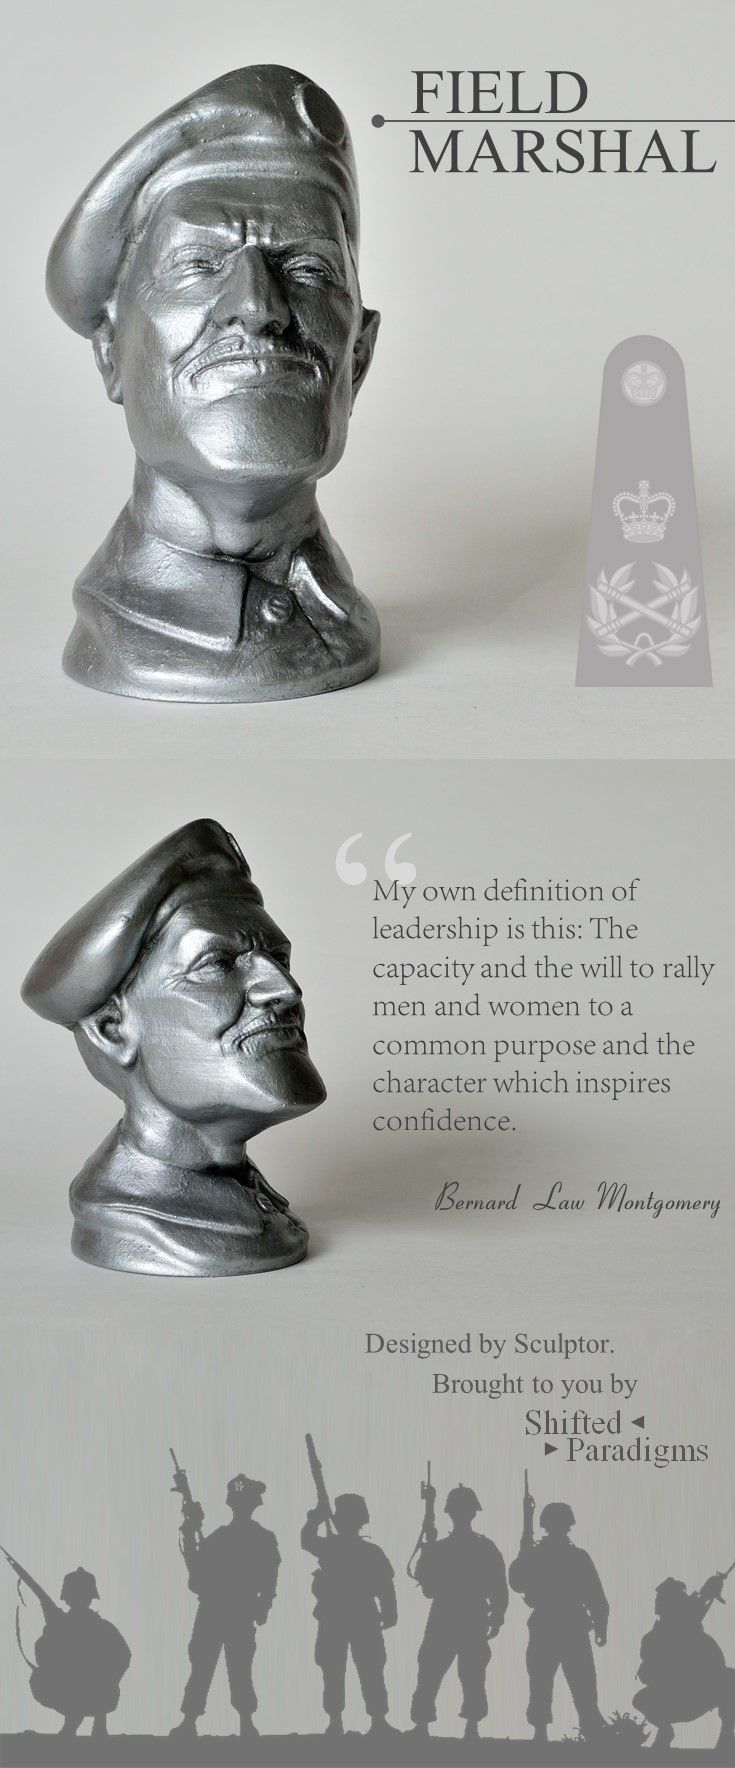 "Sculpture inspired by the legendary Field Marshal Bernard Law Montgomery, a senior British Army officer who fought in both the First World War and the Second World War.   Montgomery was not only an accomplished officer, but a great leader too. His wisdom still inspires aspiring leaders today, as Monty said: ""My own definition of leadership is this: The capacity and the will to rally men and women to a common purpose and the character which inspires confidence."""